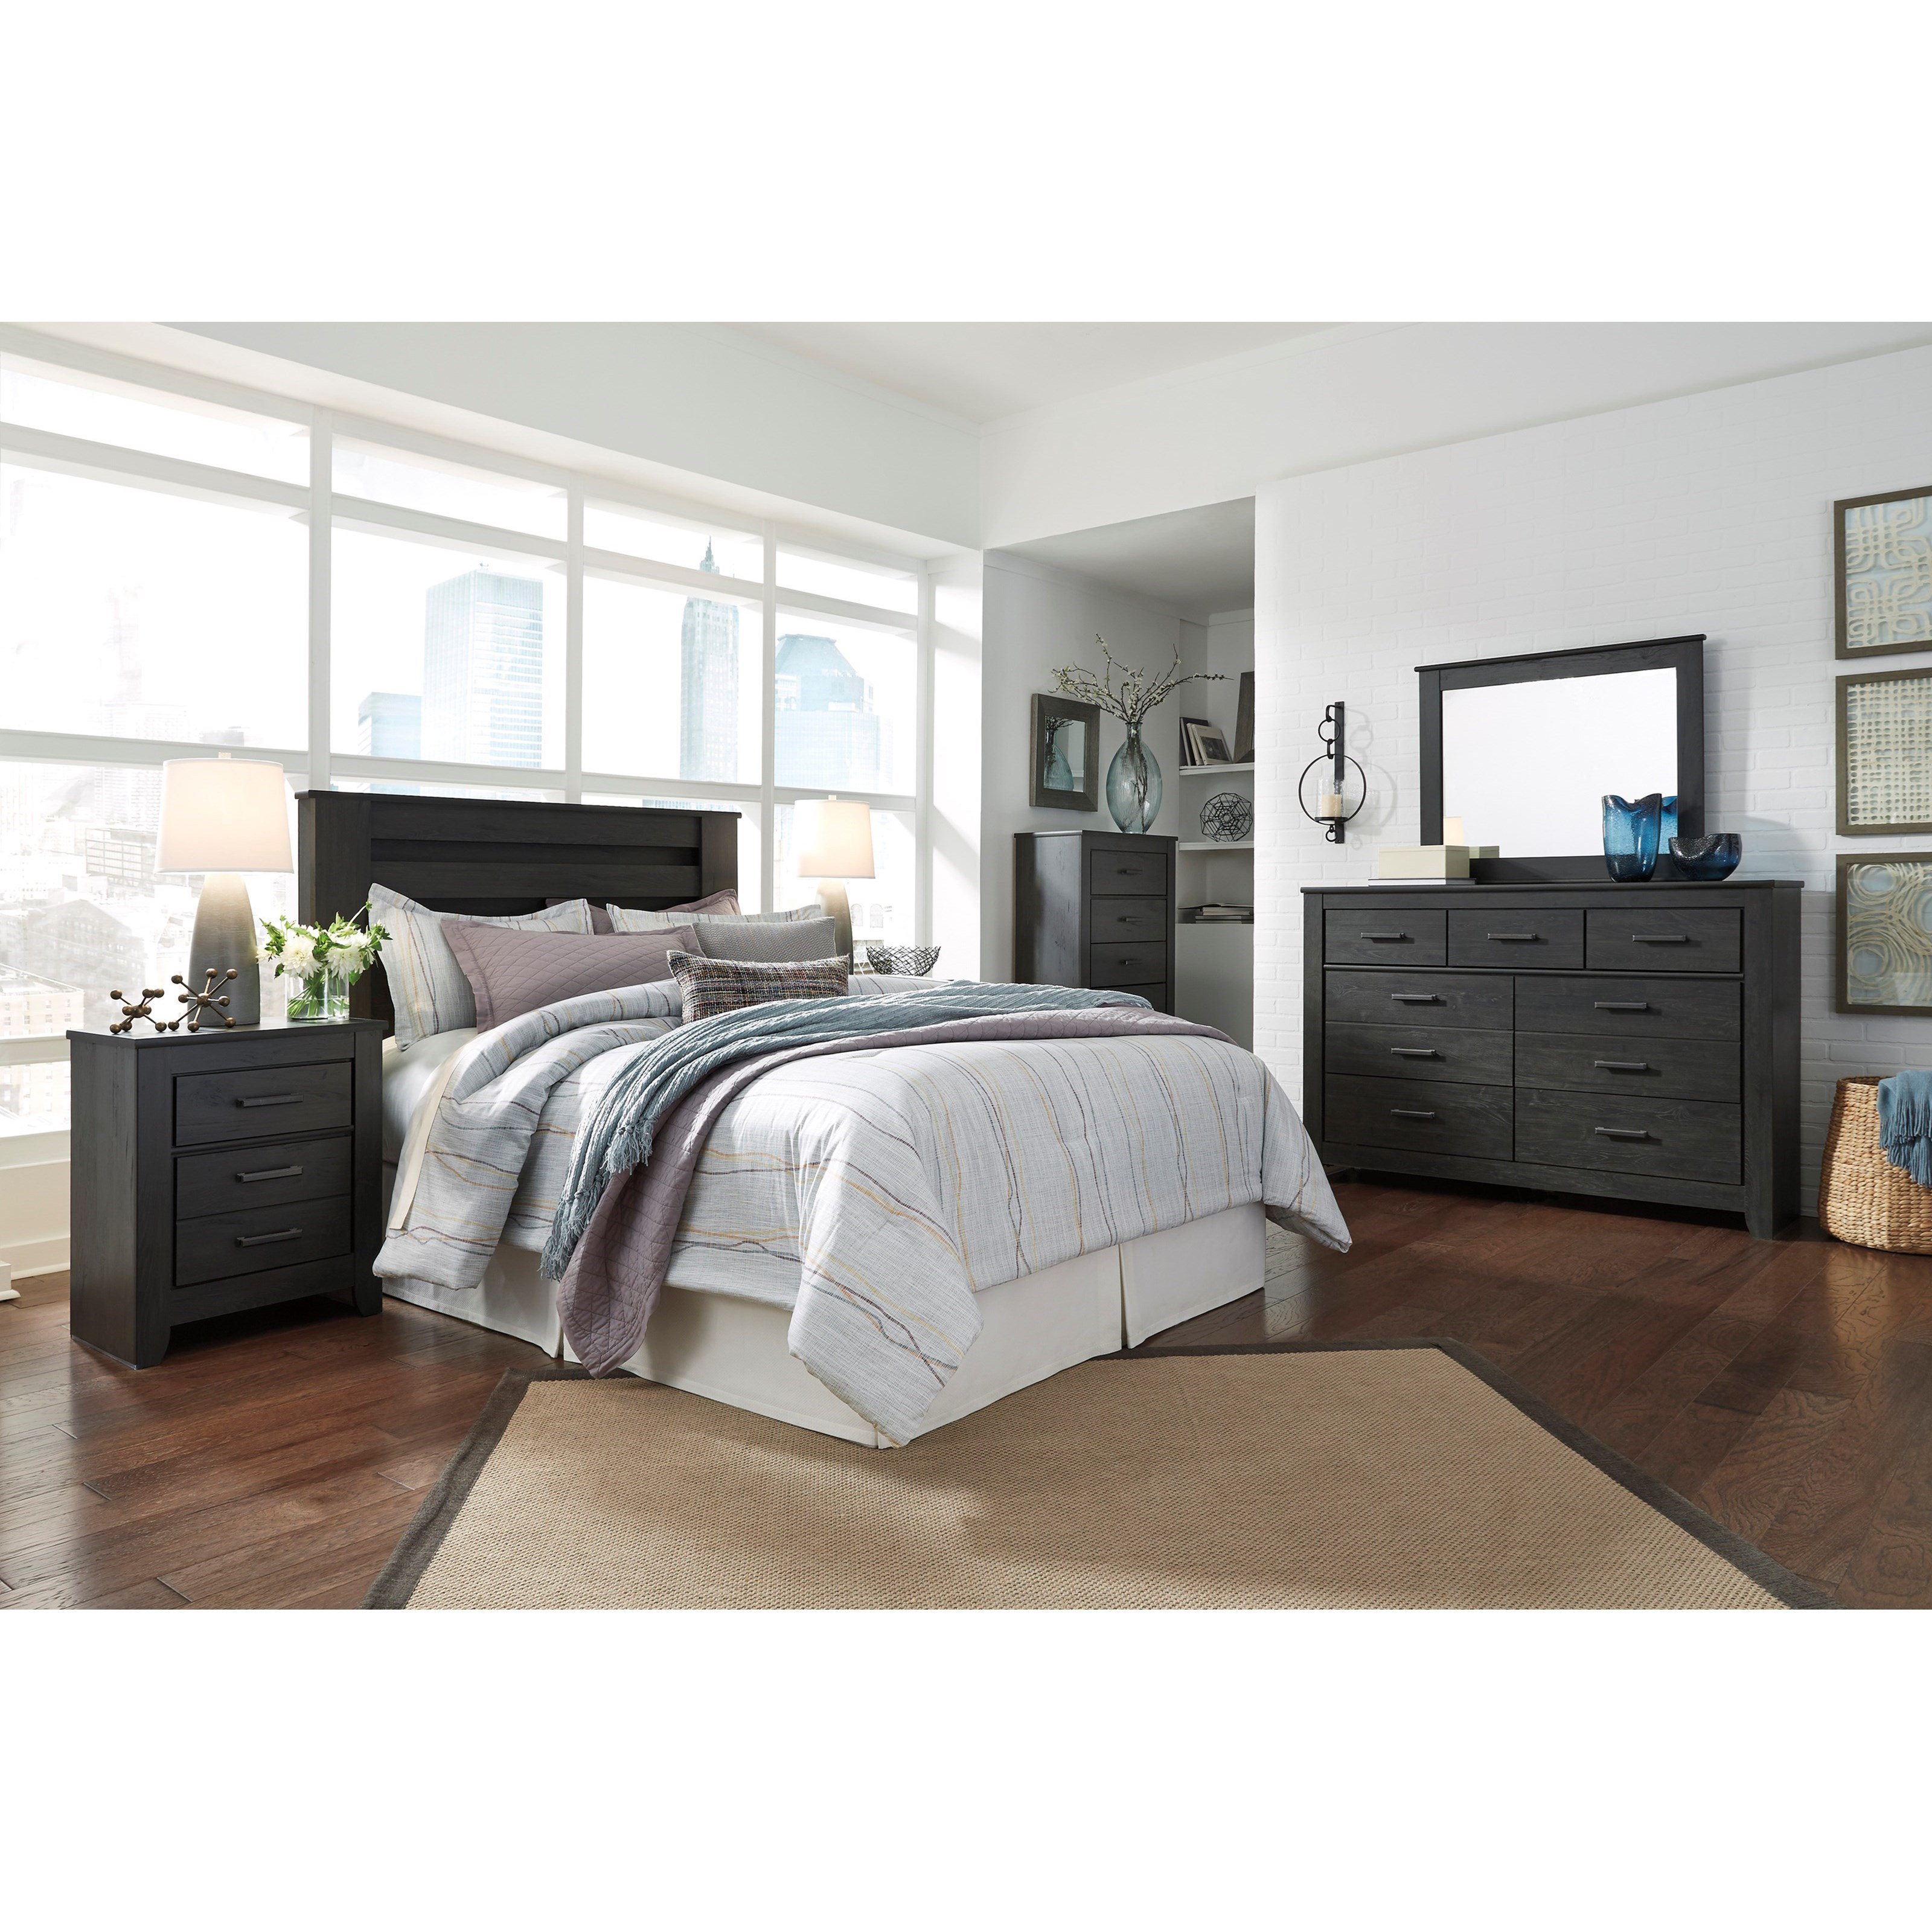 Brinxton King/California King Bedroom Group by Signature Design by Ashley at Northeast Factory Direct